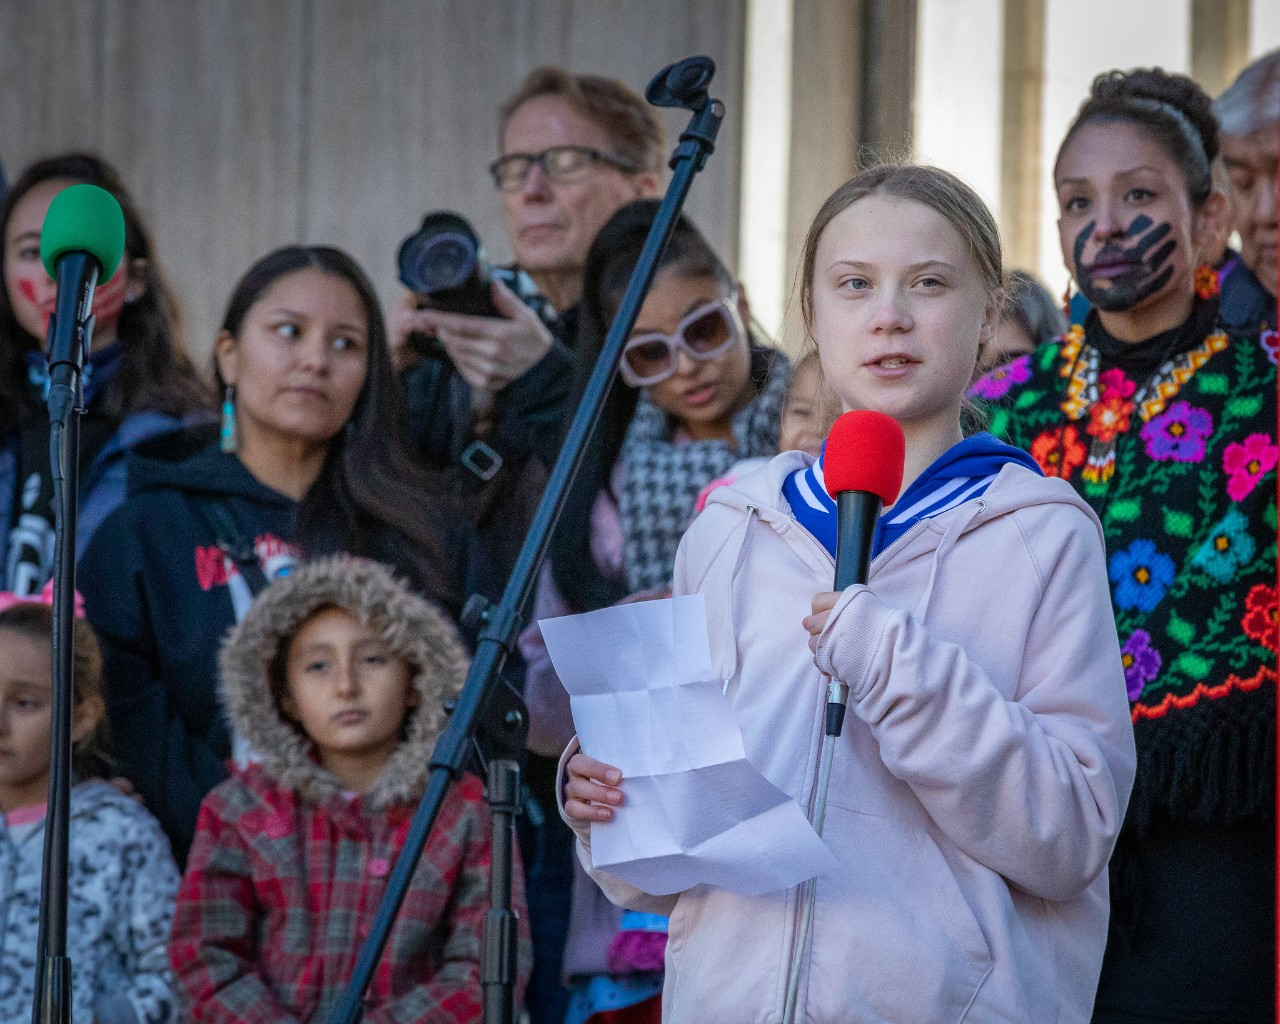 Greta Thunberg addresses climate strikers at Civic Center Park in Denver. Photo: Andy Bosselman, Streetsblog Denver